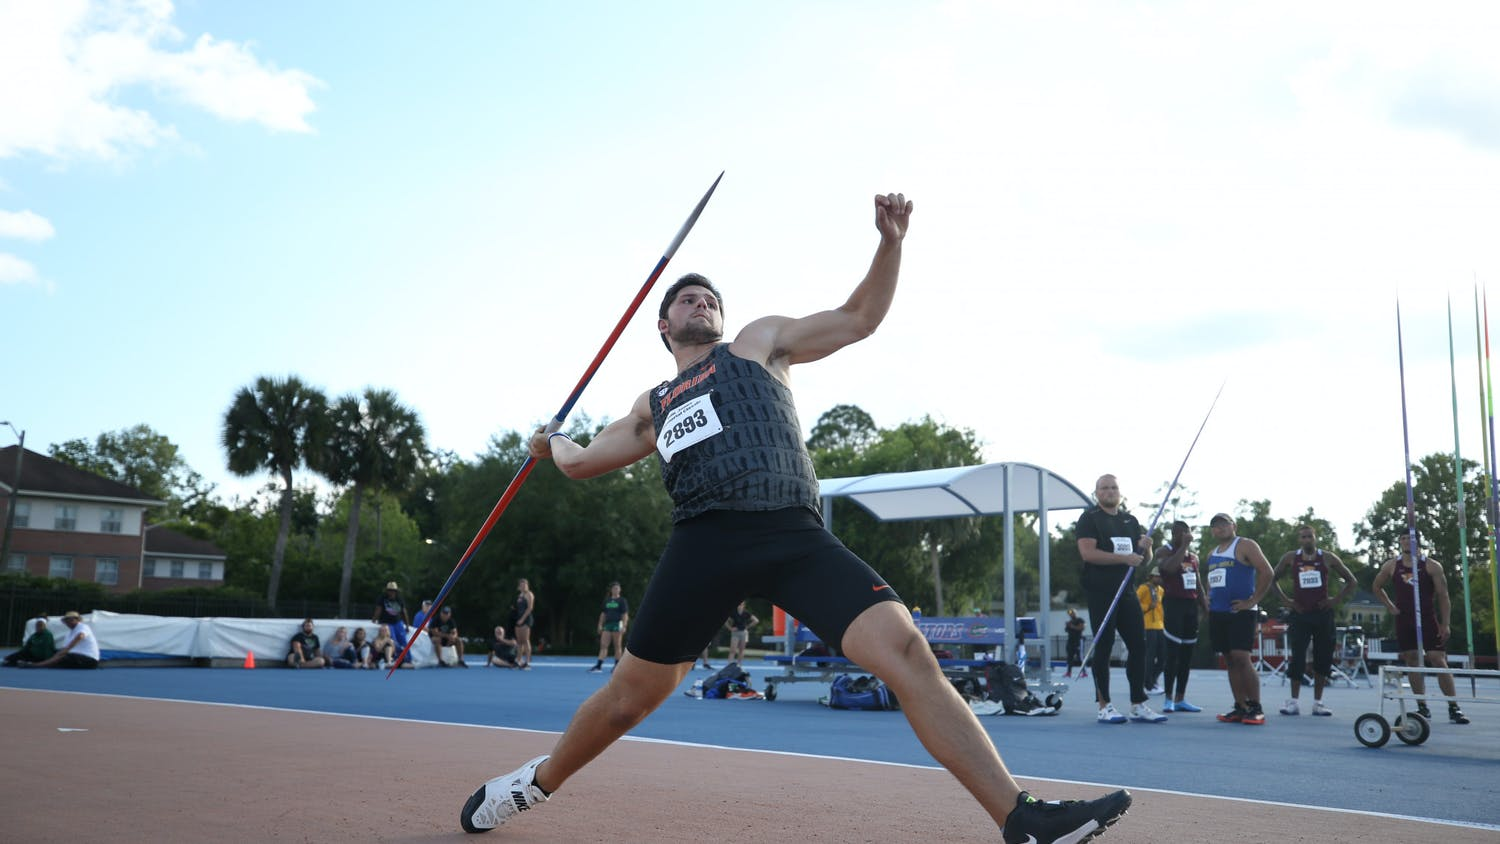 Jacob Stanko throws a javelin at the Tom Jones Memorial Classic in 2019.